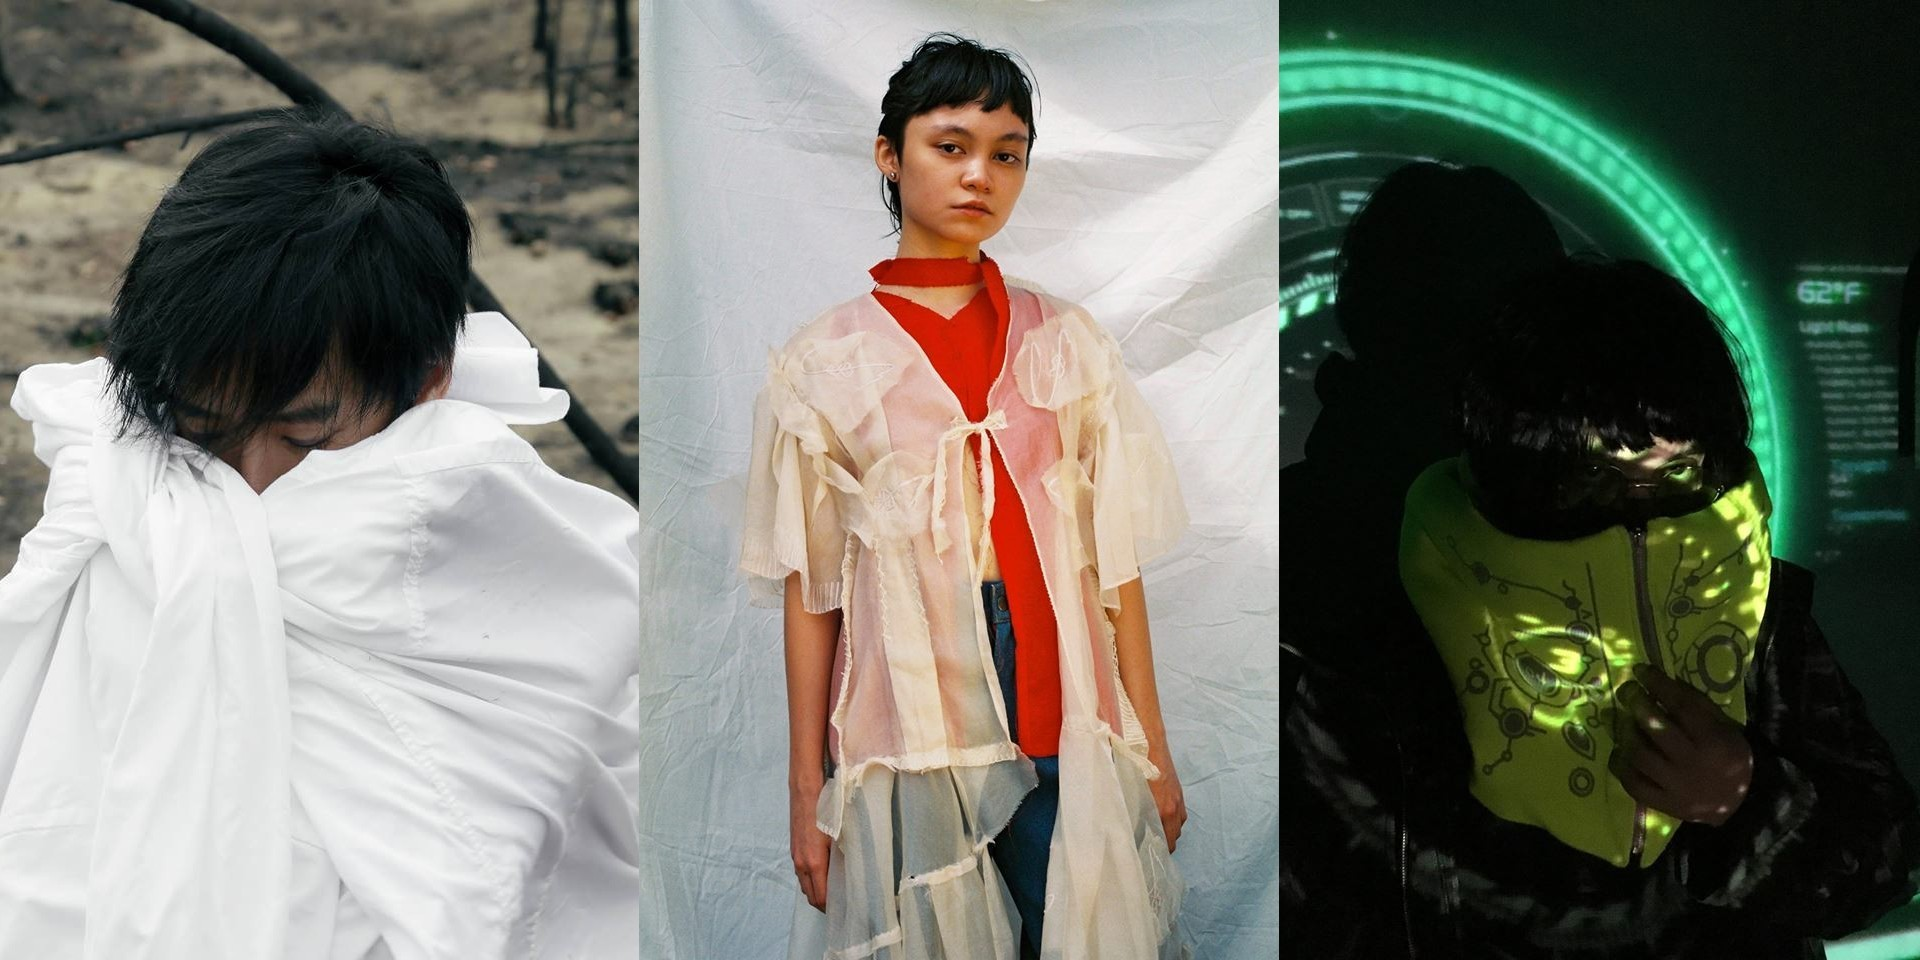 BuwanBuwan Collective, ZOOM LENS to showcase Meishi Smile, J LVL, and more